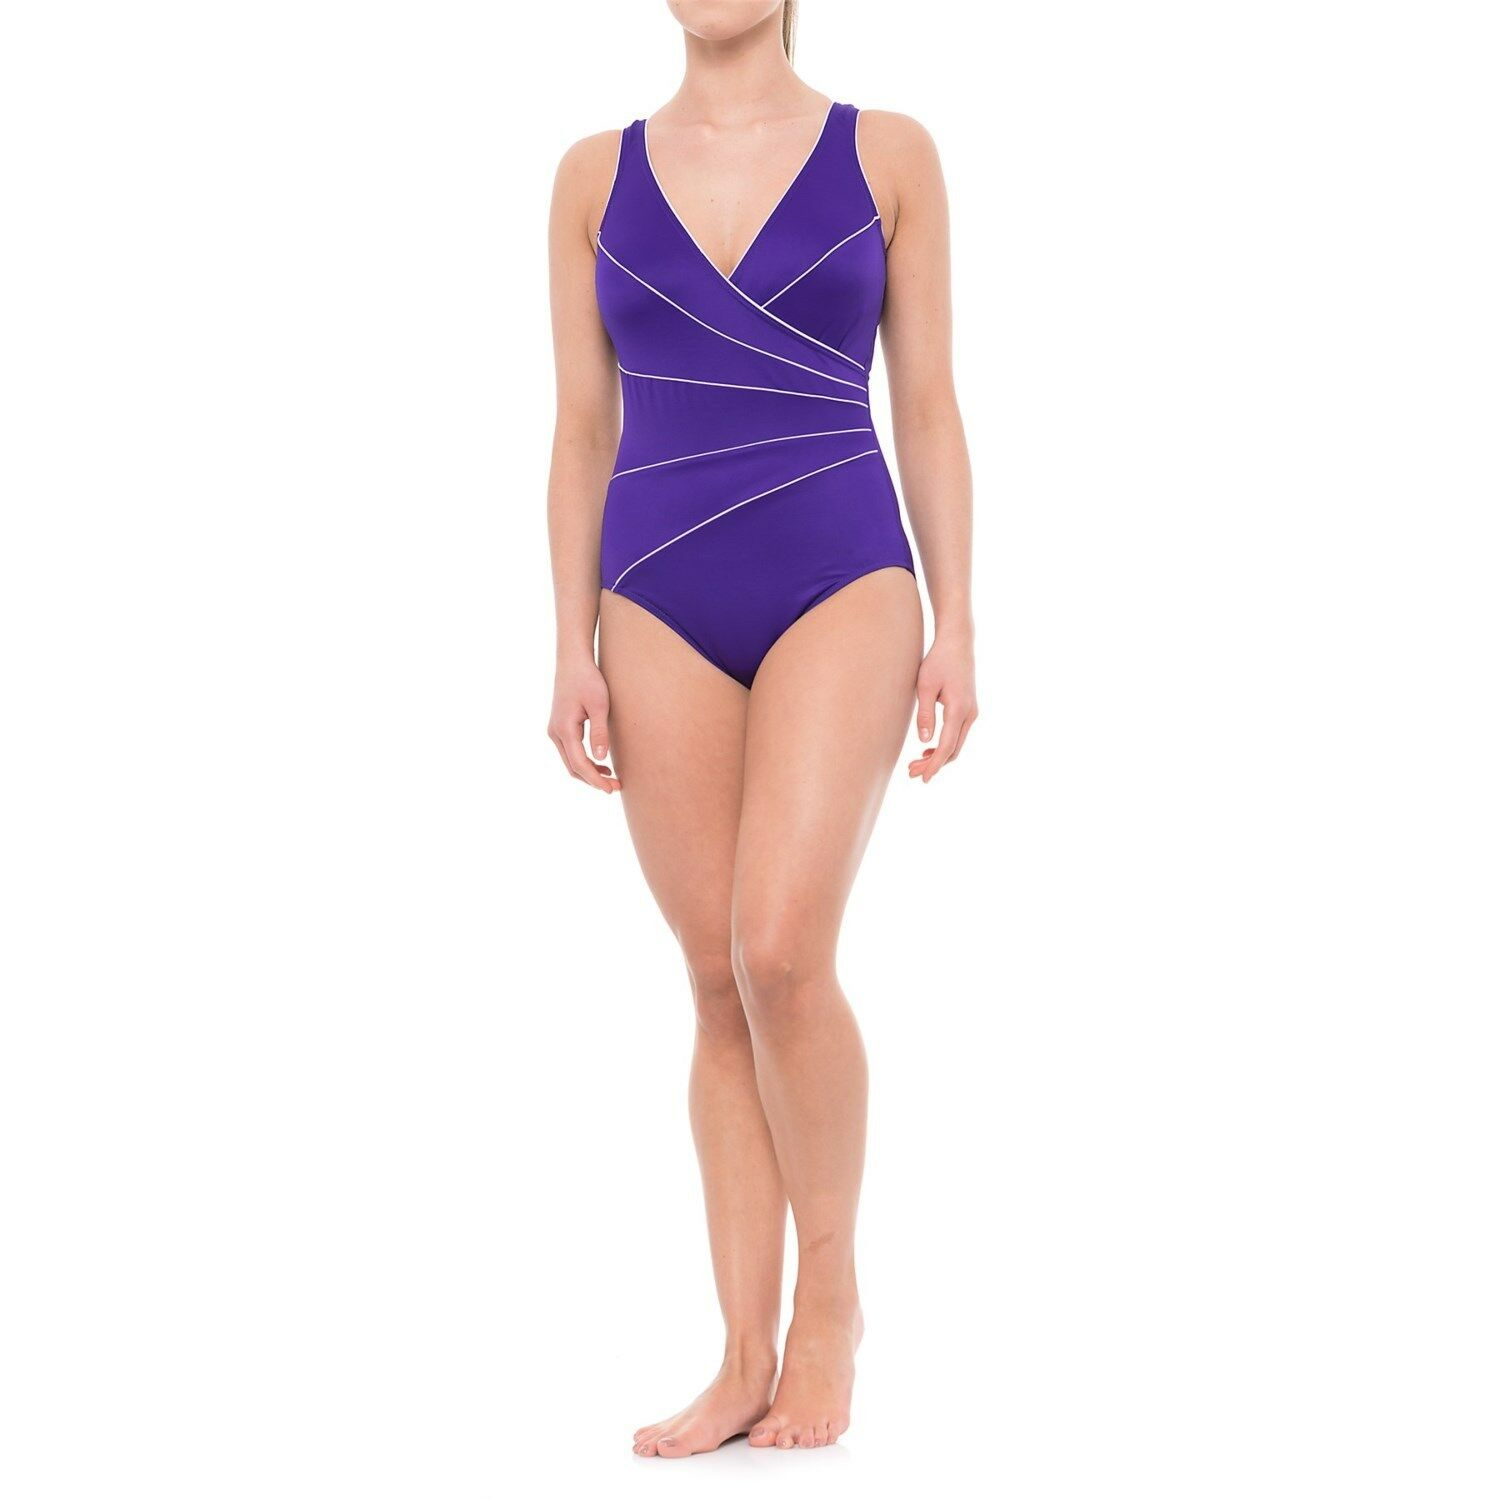 NEW MIRACLESUIT Sz 14 44 Horizon Marine blueE TANK 1 PIECE SWIMSUIT  150 Retail